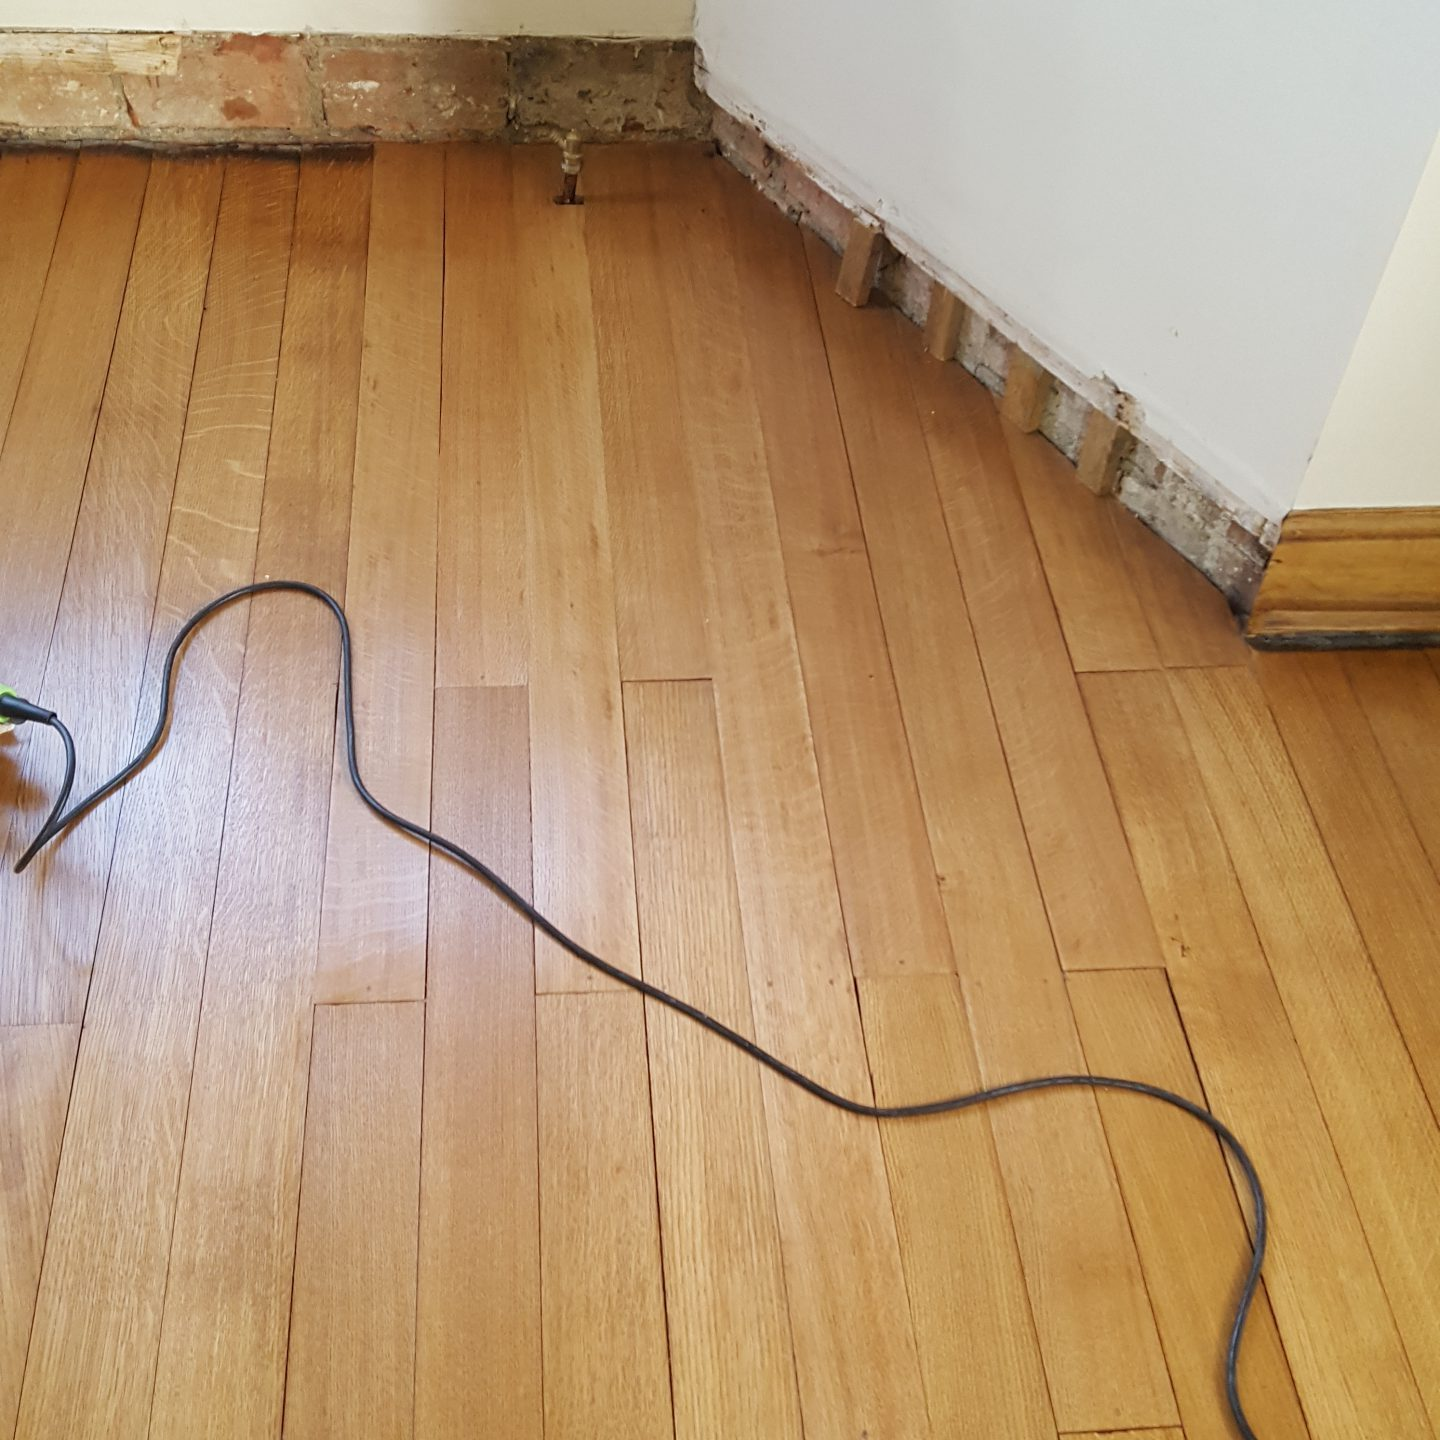 Stunning repair to Edwardian English oak floor after fire damage